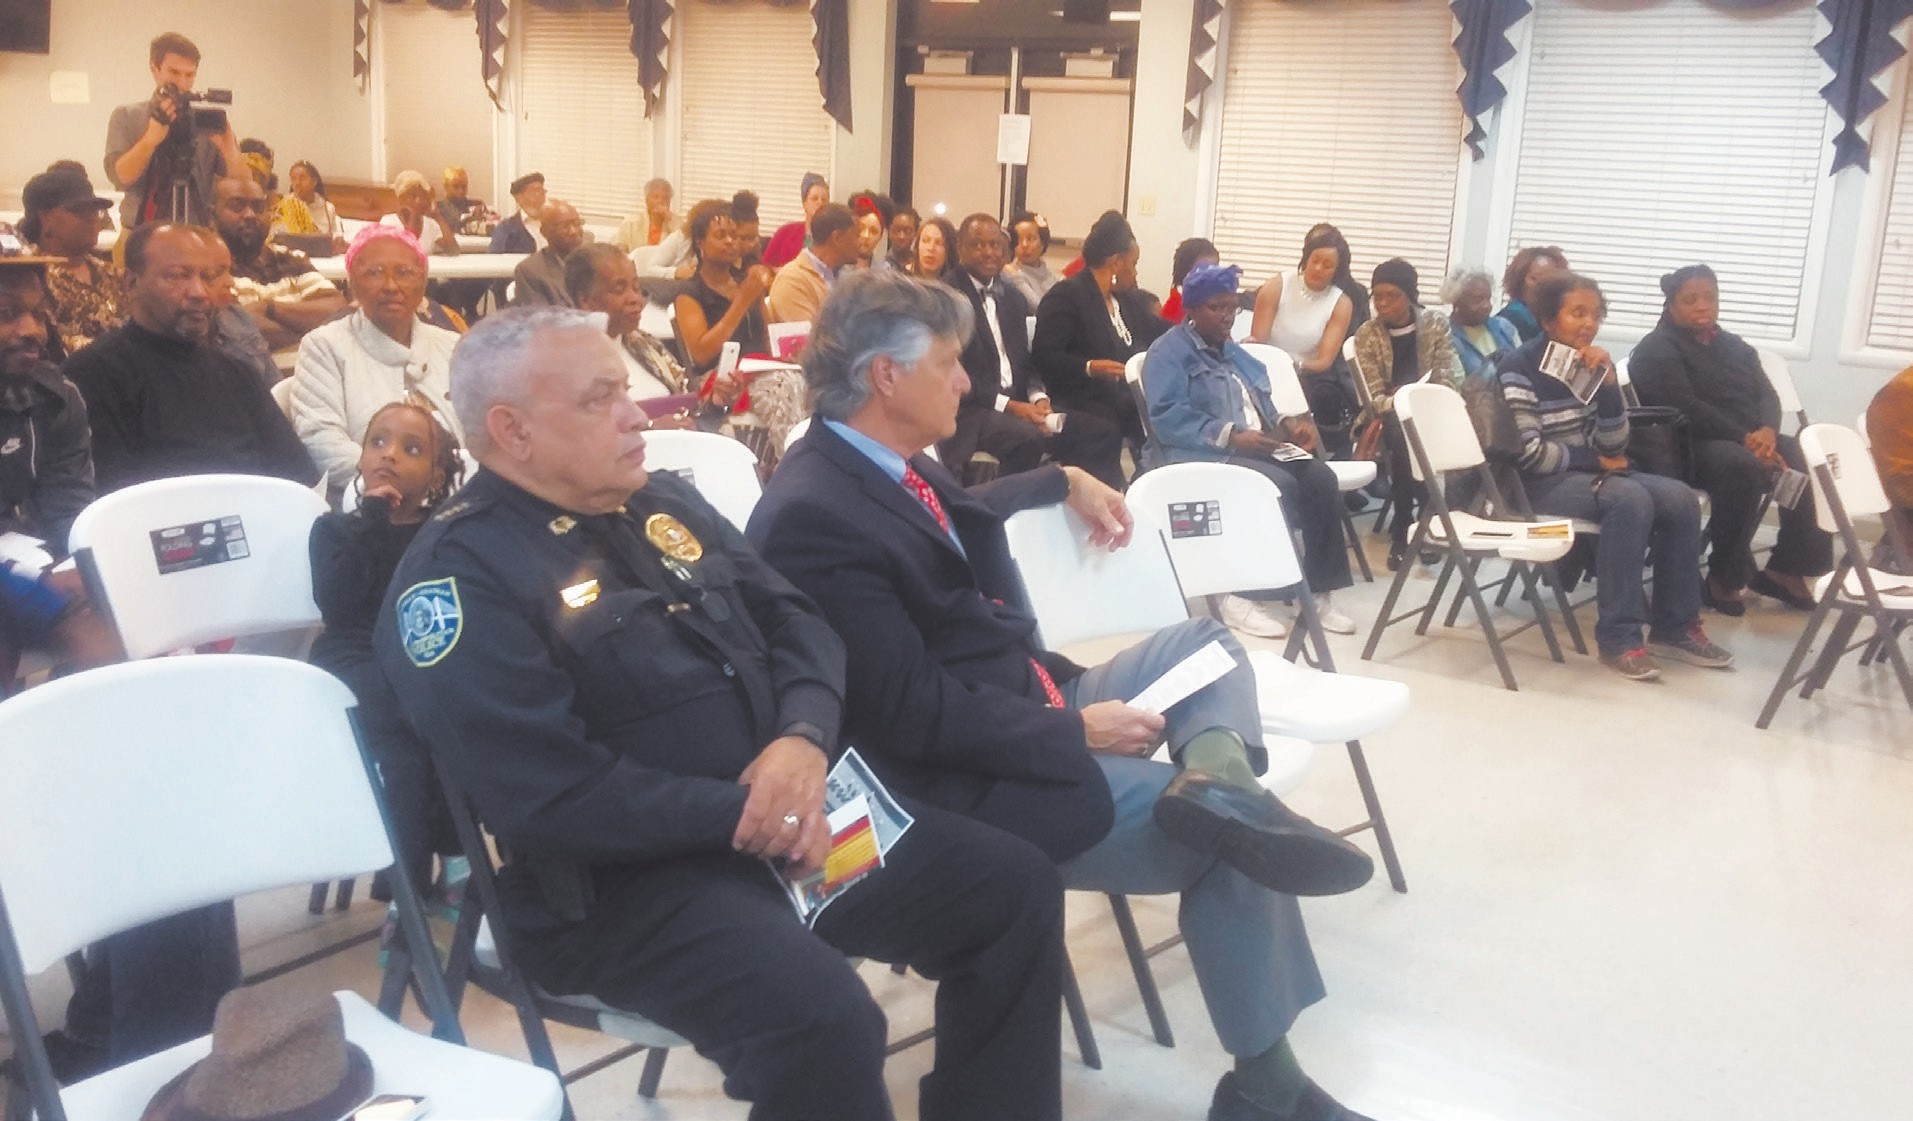 SCMPD Chief James Lumpkin shown with Mayor Eddie DeLoach at the opening ceremony for 3rd Annual Kawanzaa Celebration. Over 100 people were in attendance.